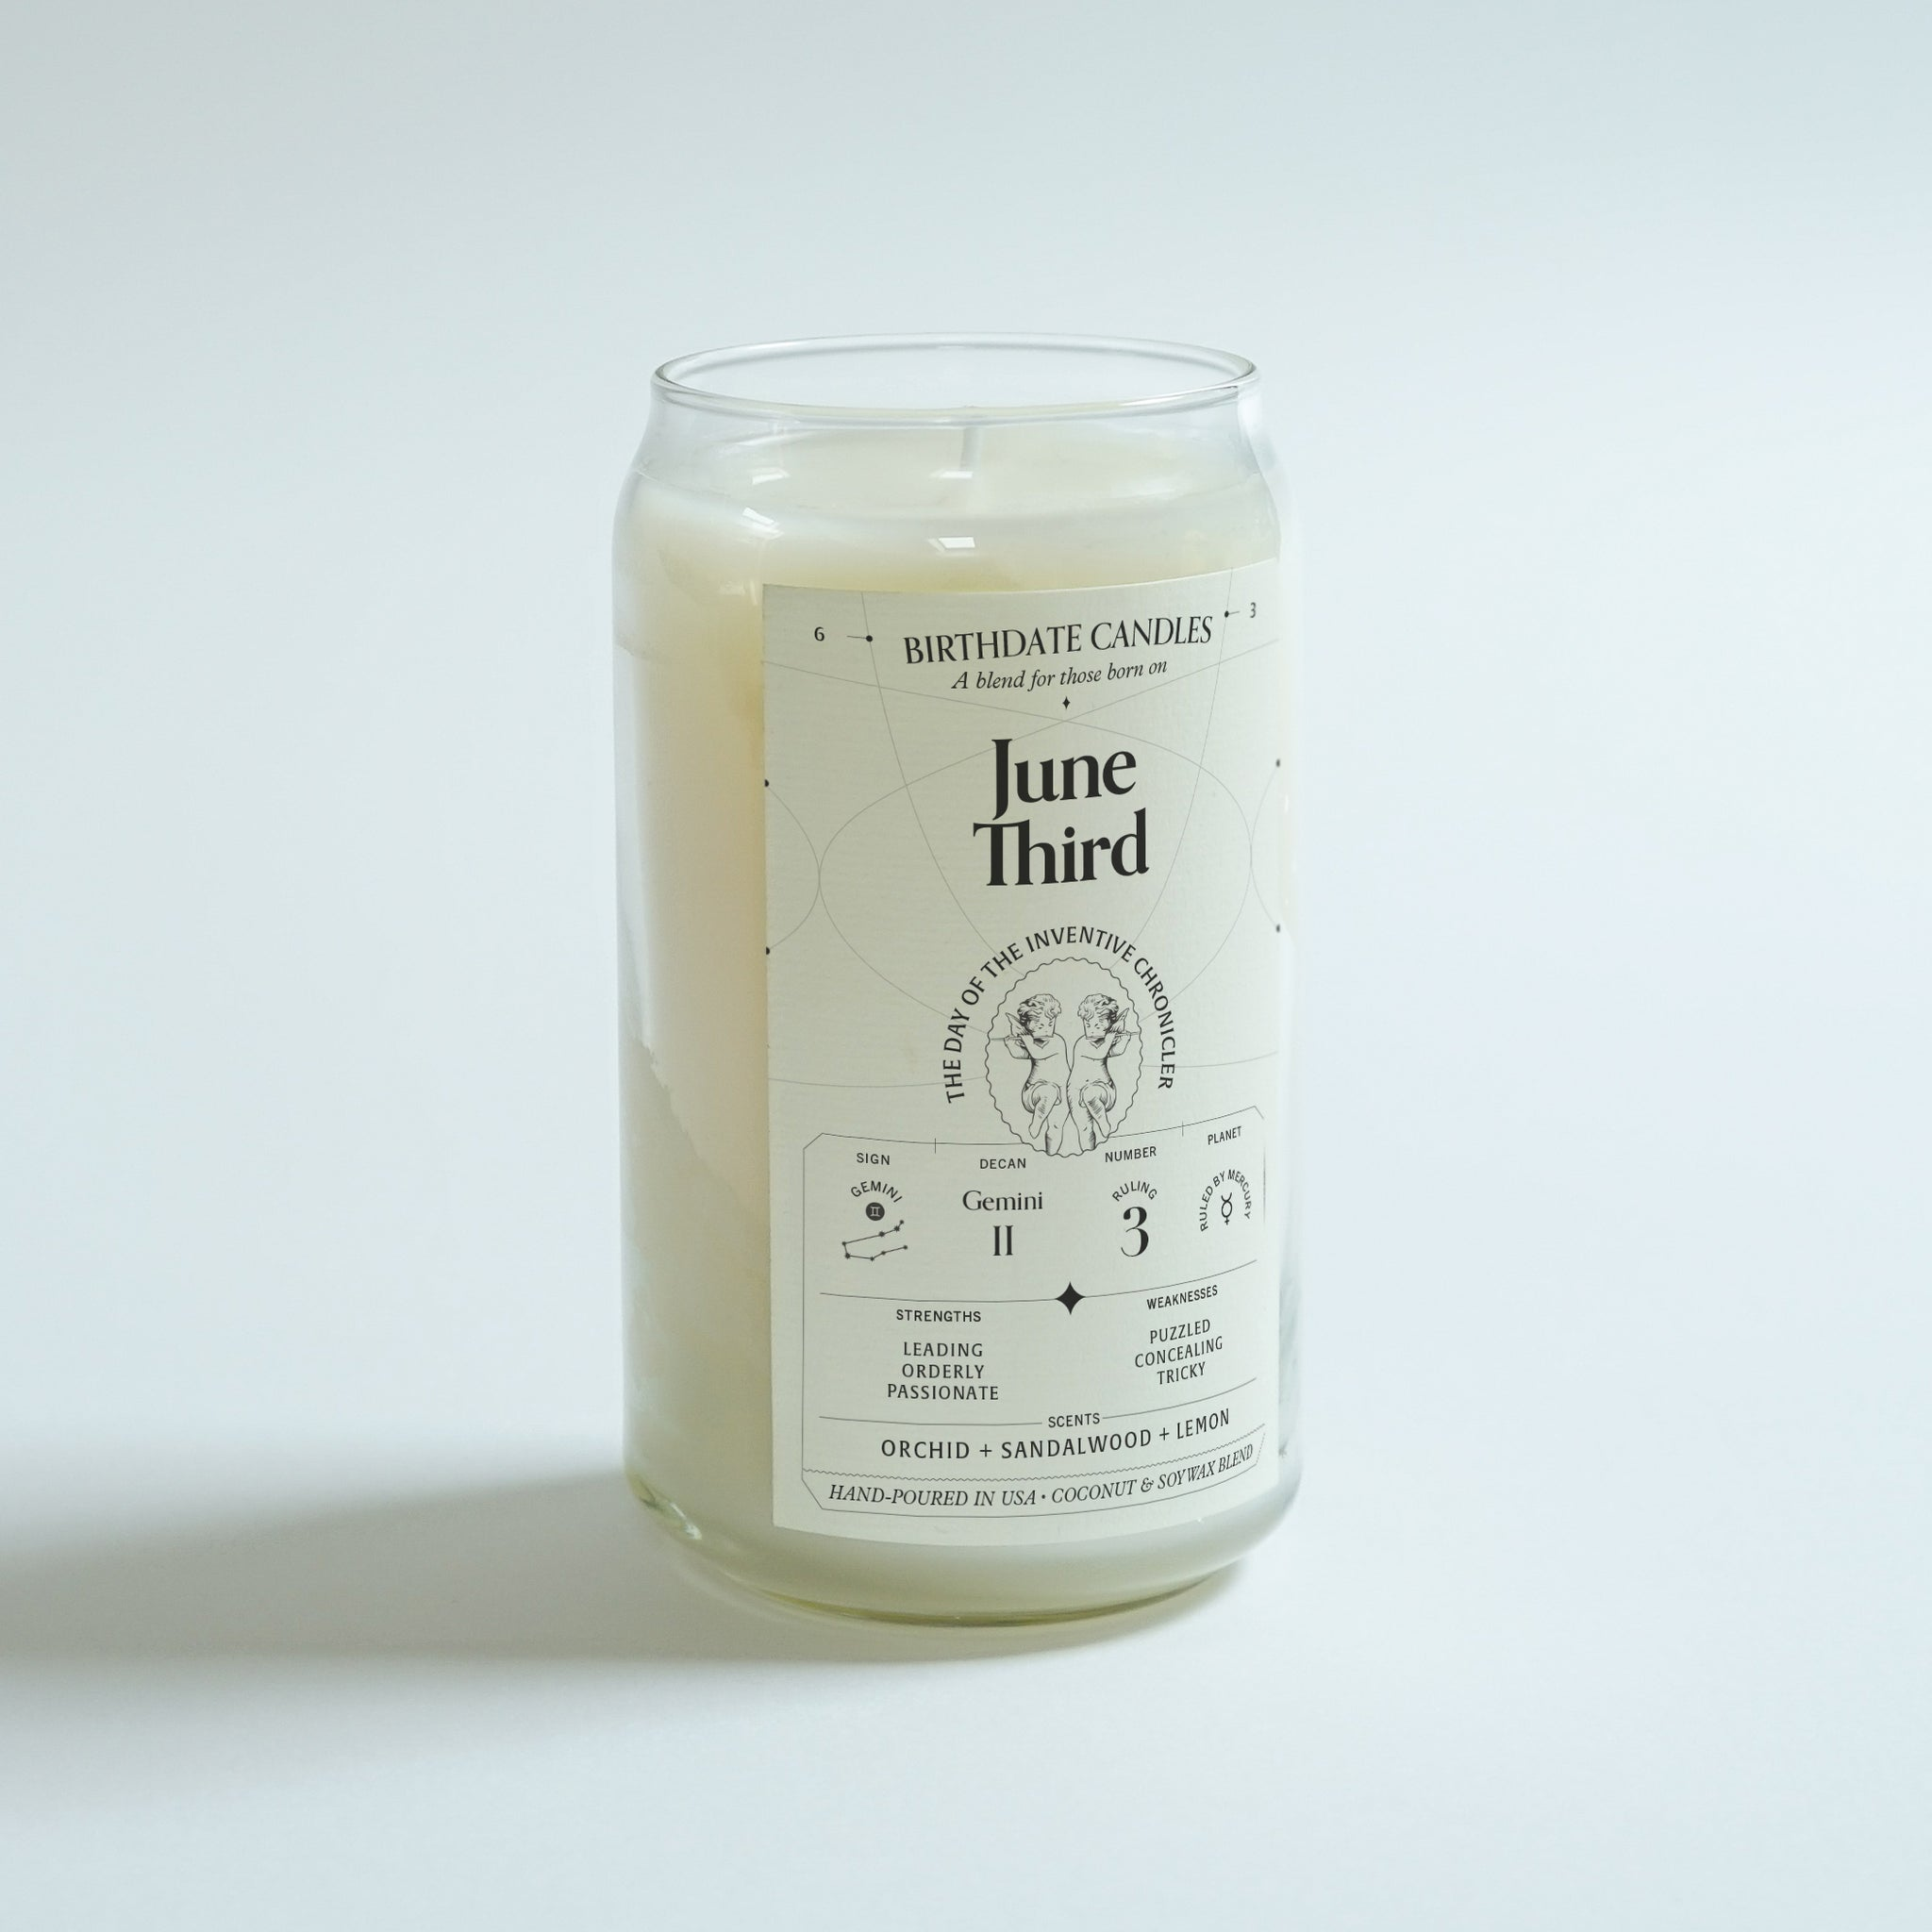 The June Third Candle